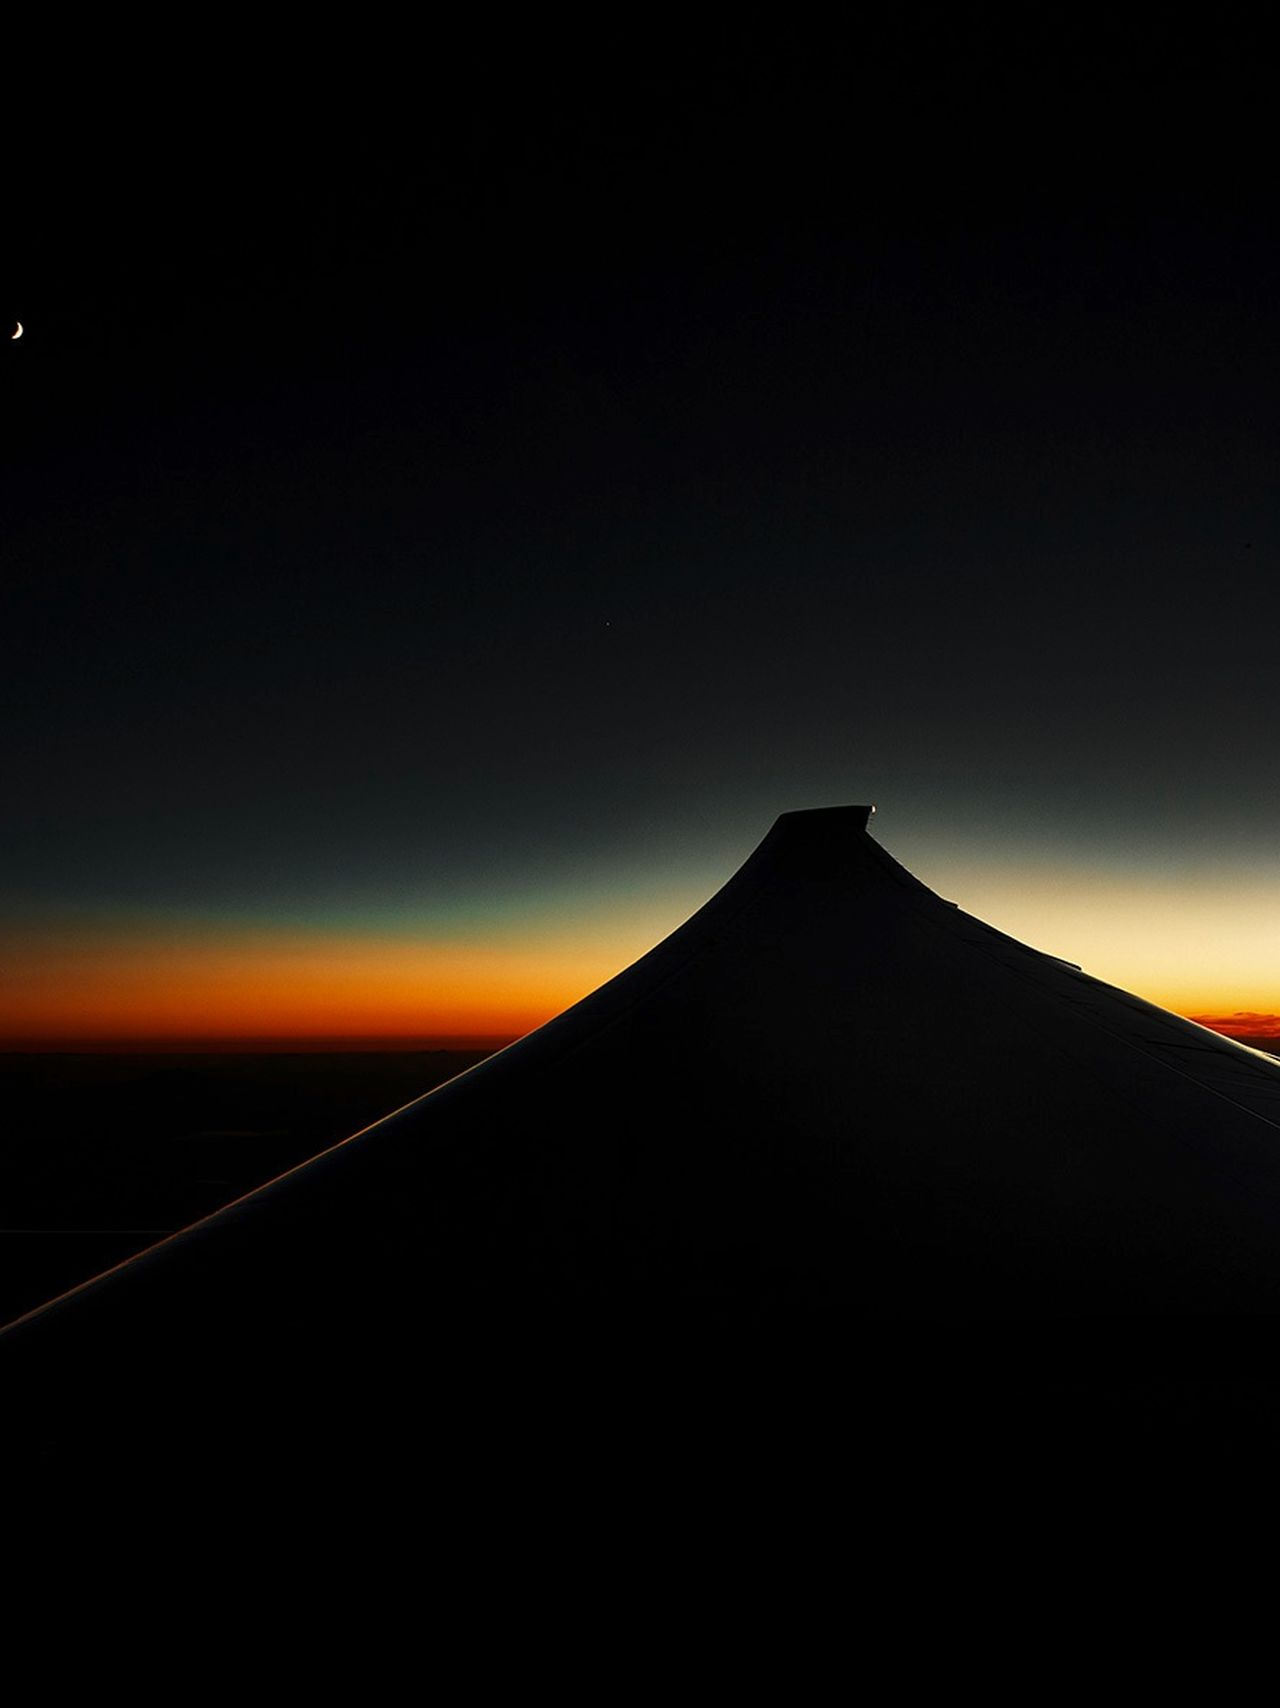 Good Night Travel Emirates Bedaschmid Platinum Dxb-nrt Dream Sunset Over The Clouds